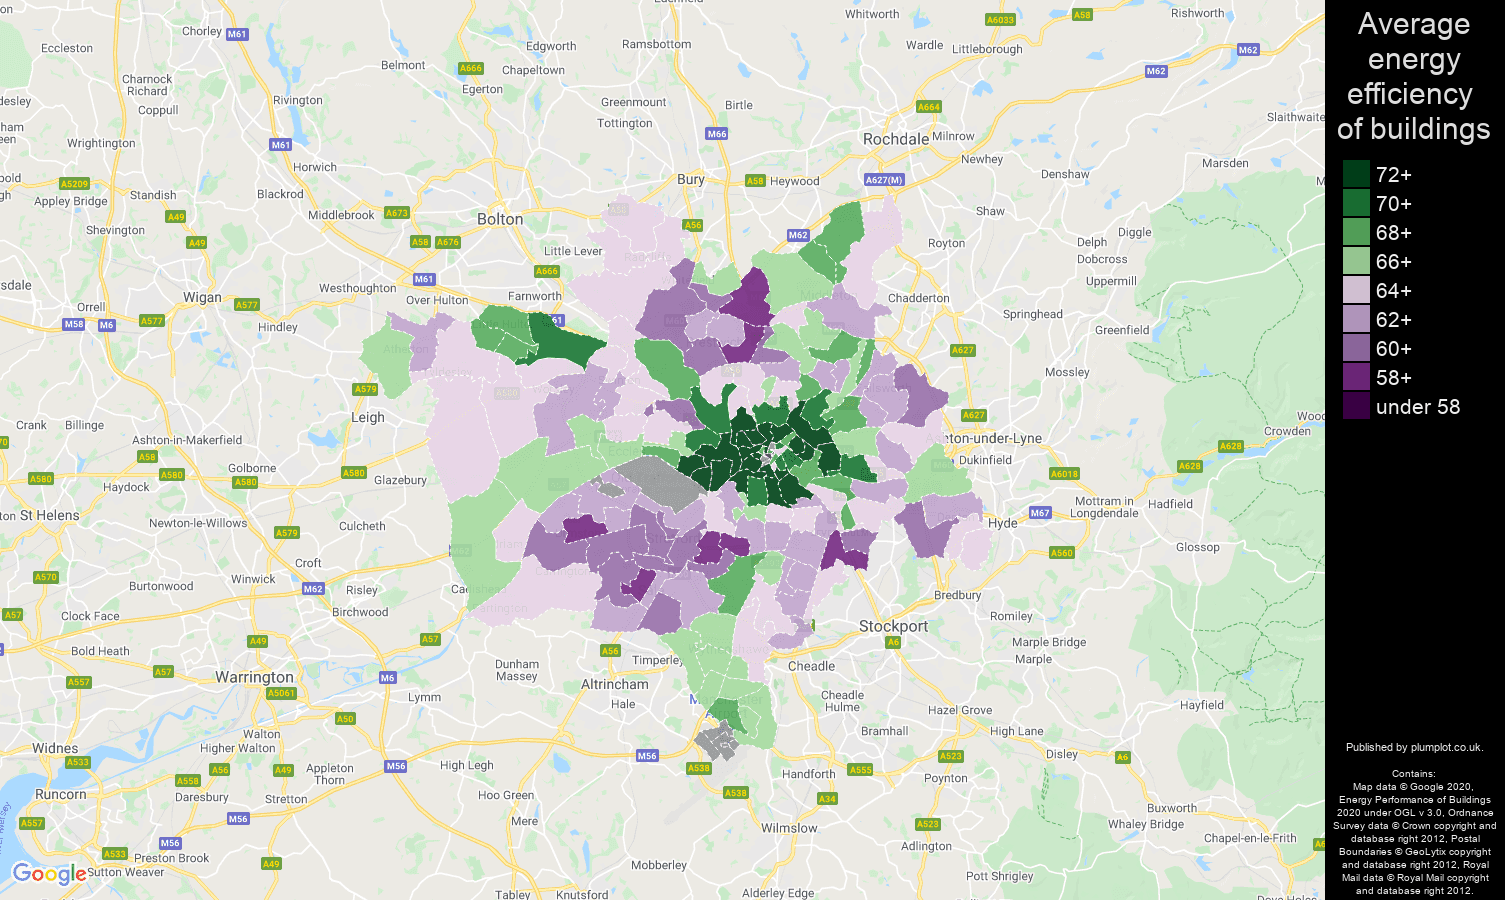 Manchester map of energy efficiency of properties